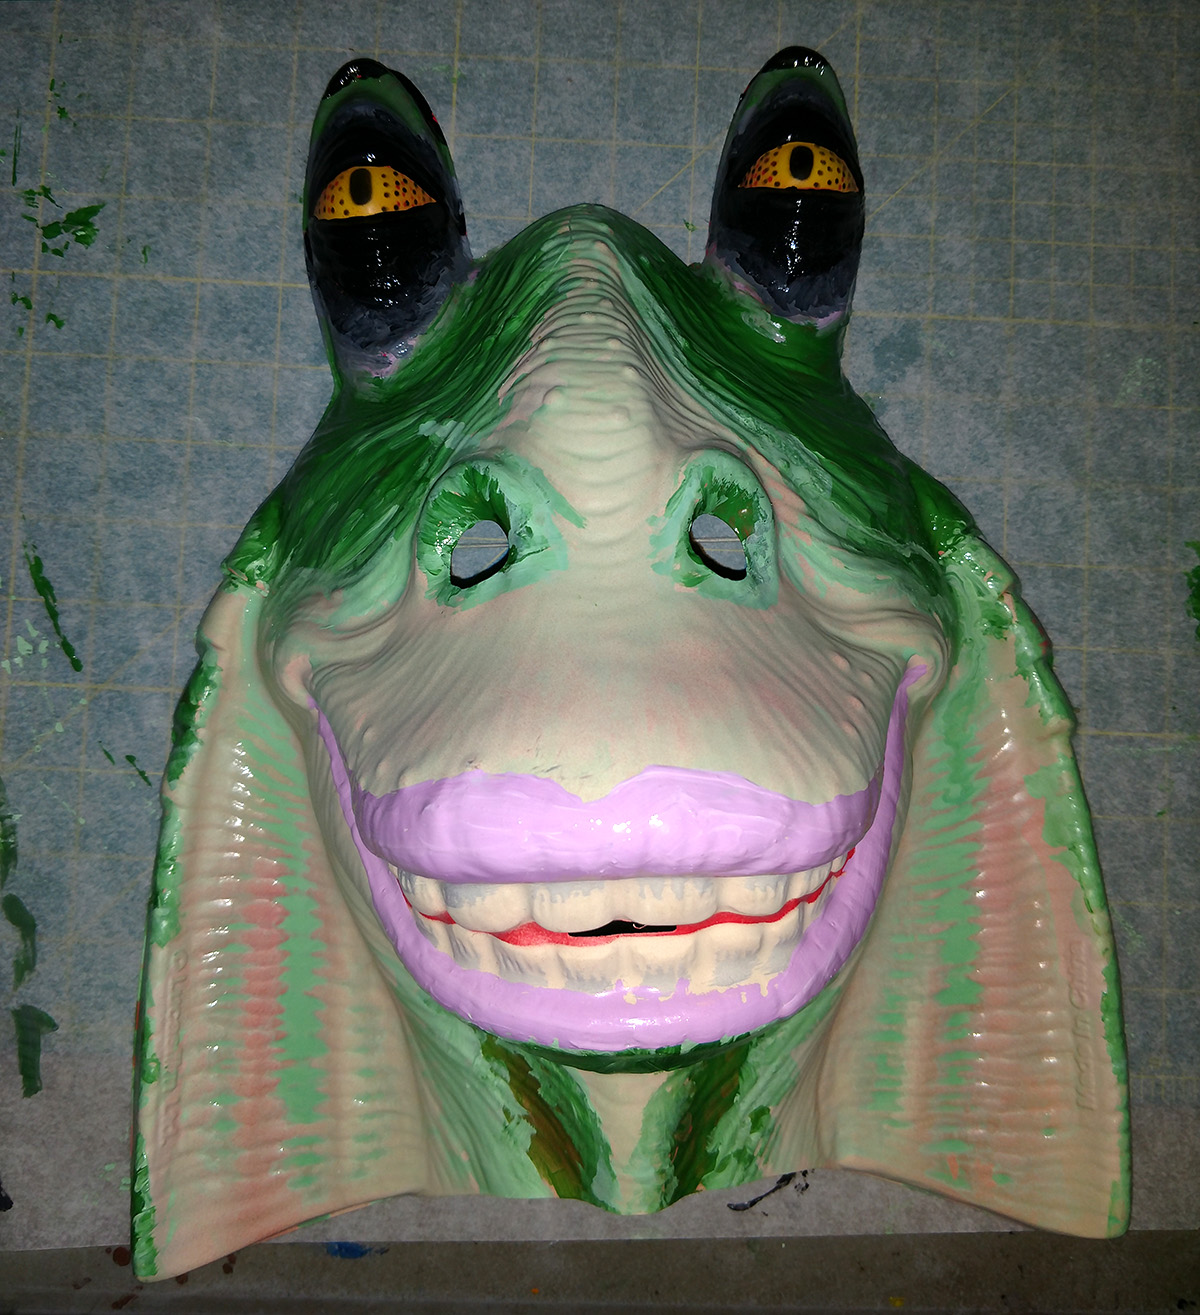 A Jar Jar Binks mask, repainted with a green and black design... and pink lipstick.